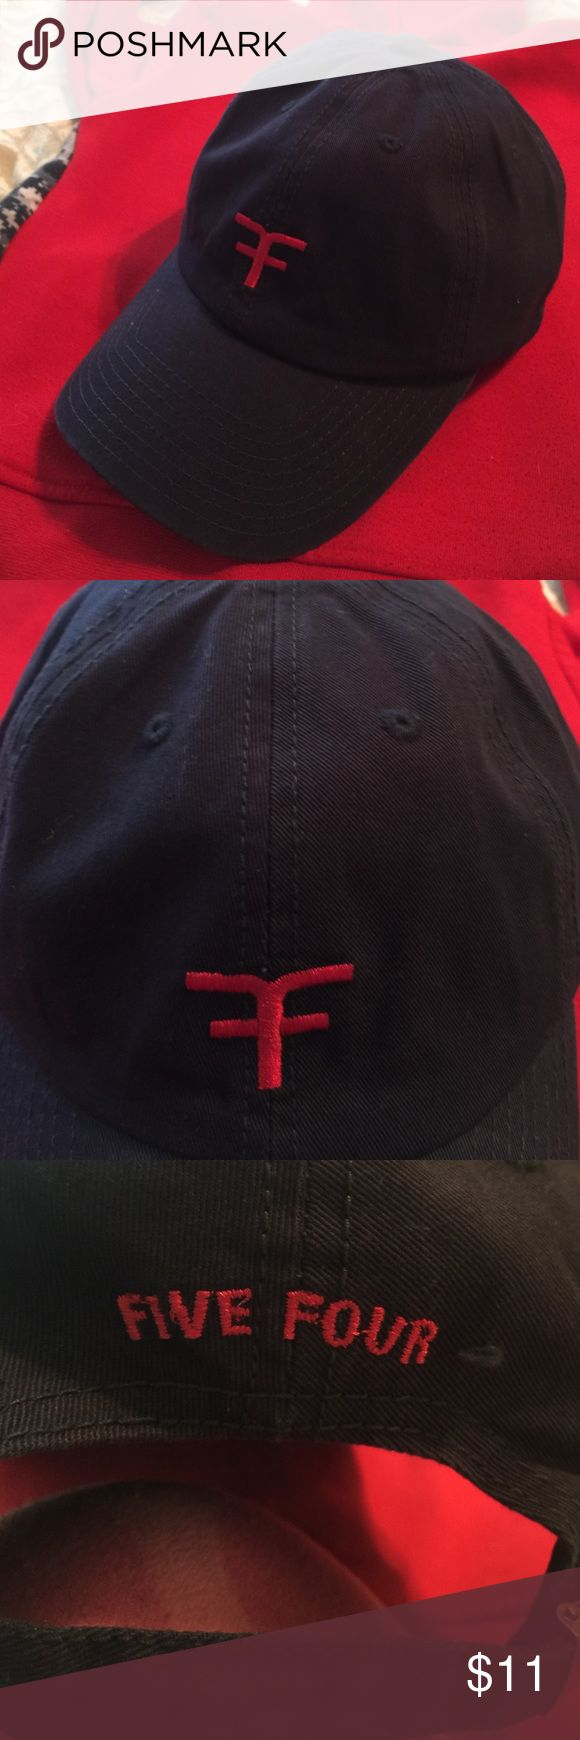 Five Four navy cap Five Four navy cap with red logo. New without tags Five Four Accessories Hats